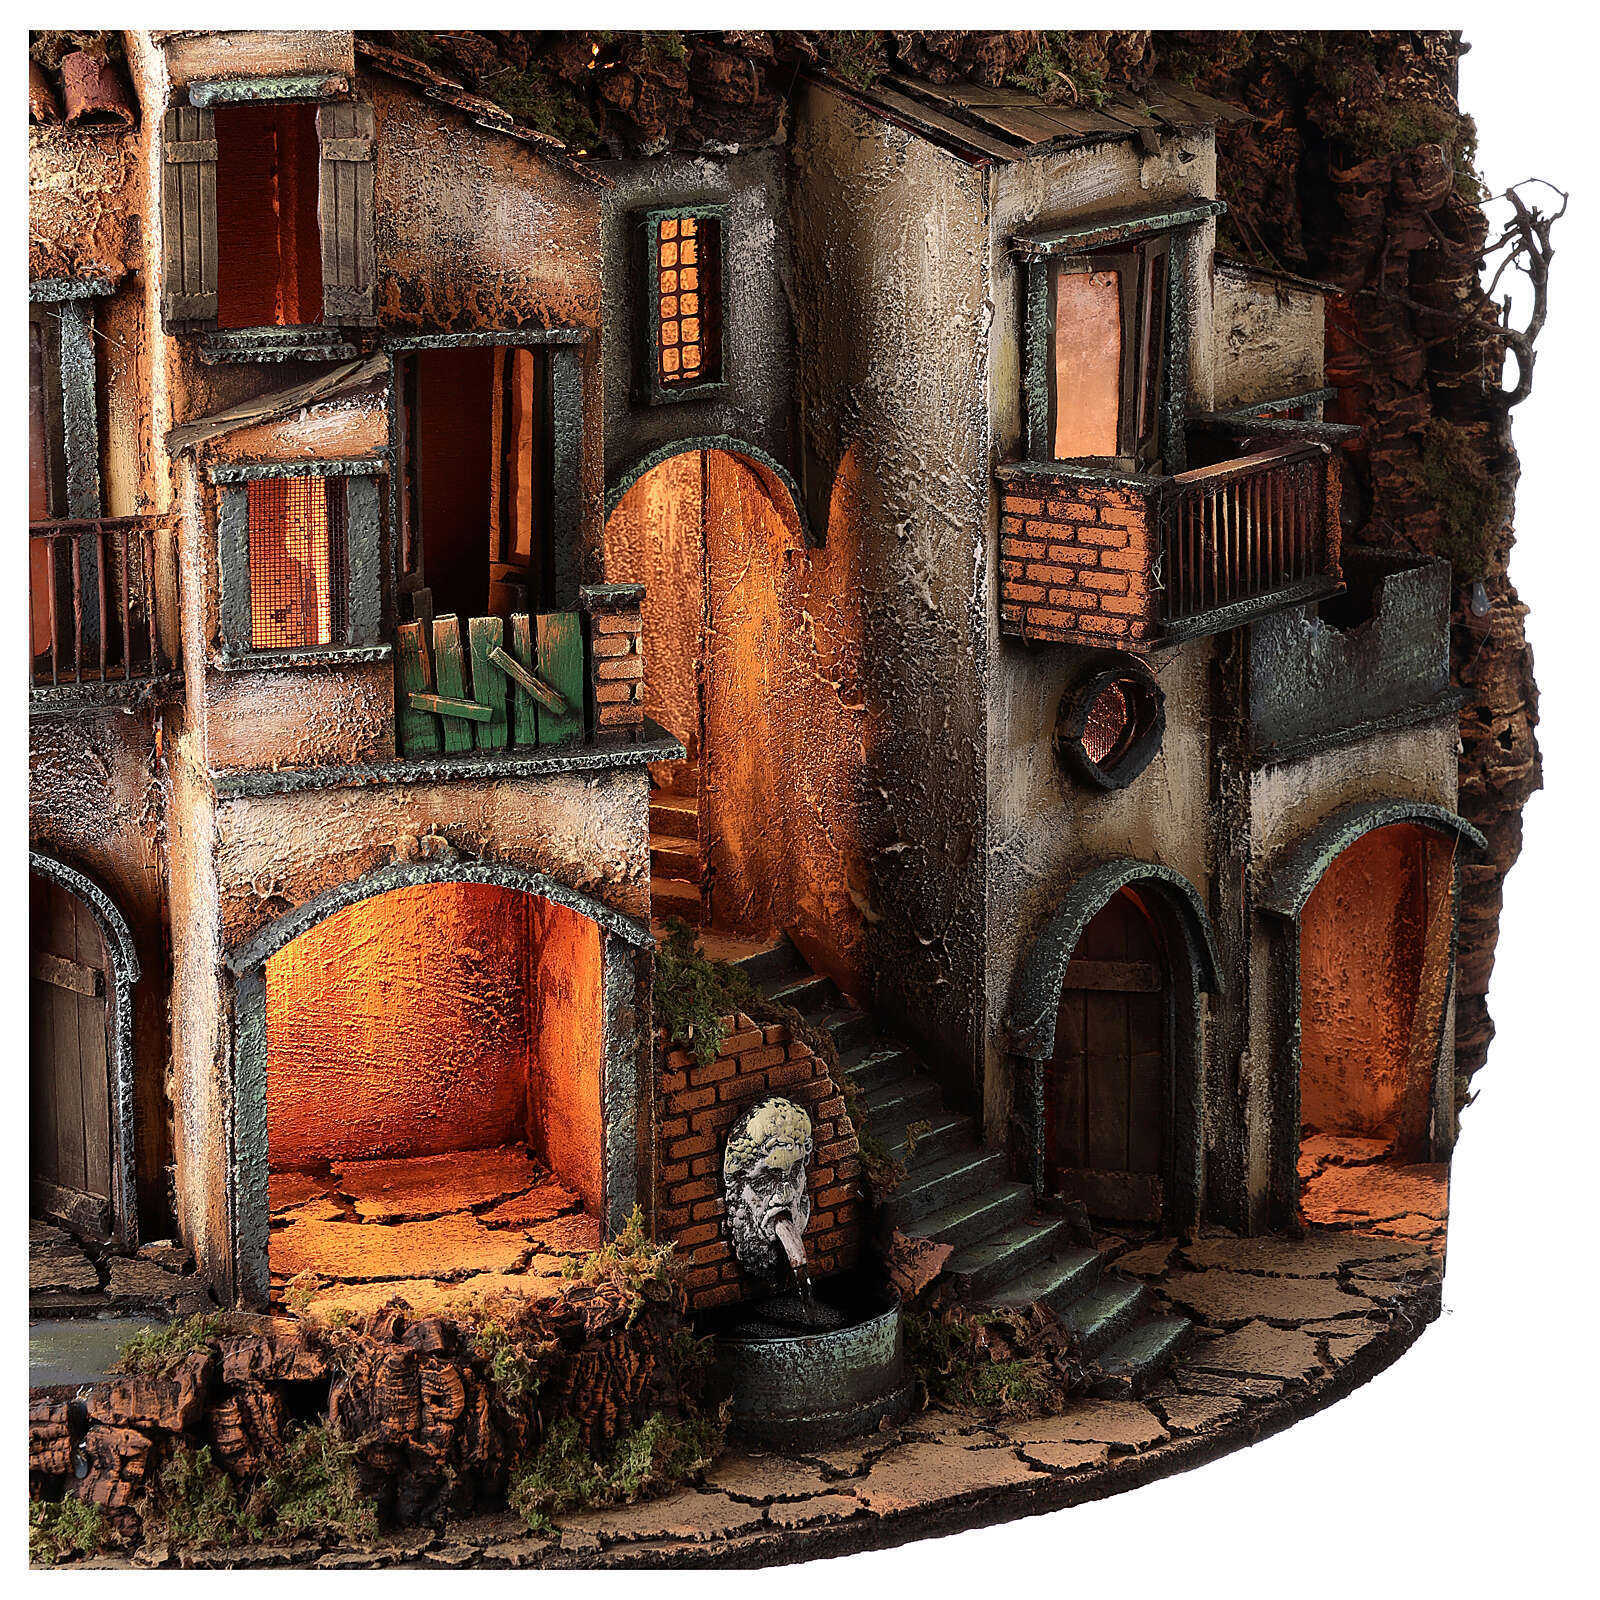 Semicircular village with millstone 115x80x60 cm for Neapolitan Nativity Scene with 10-13 cm figurines 4